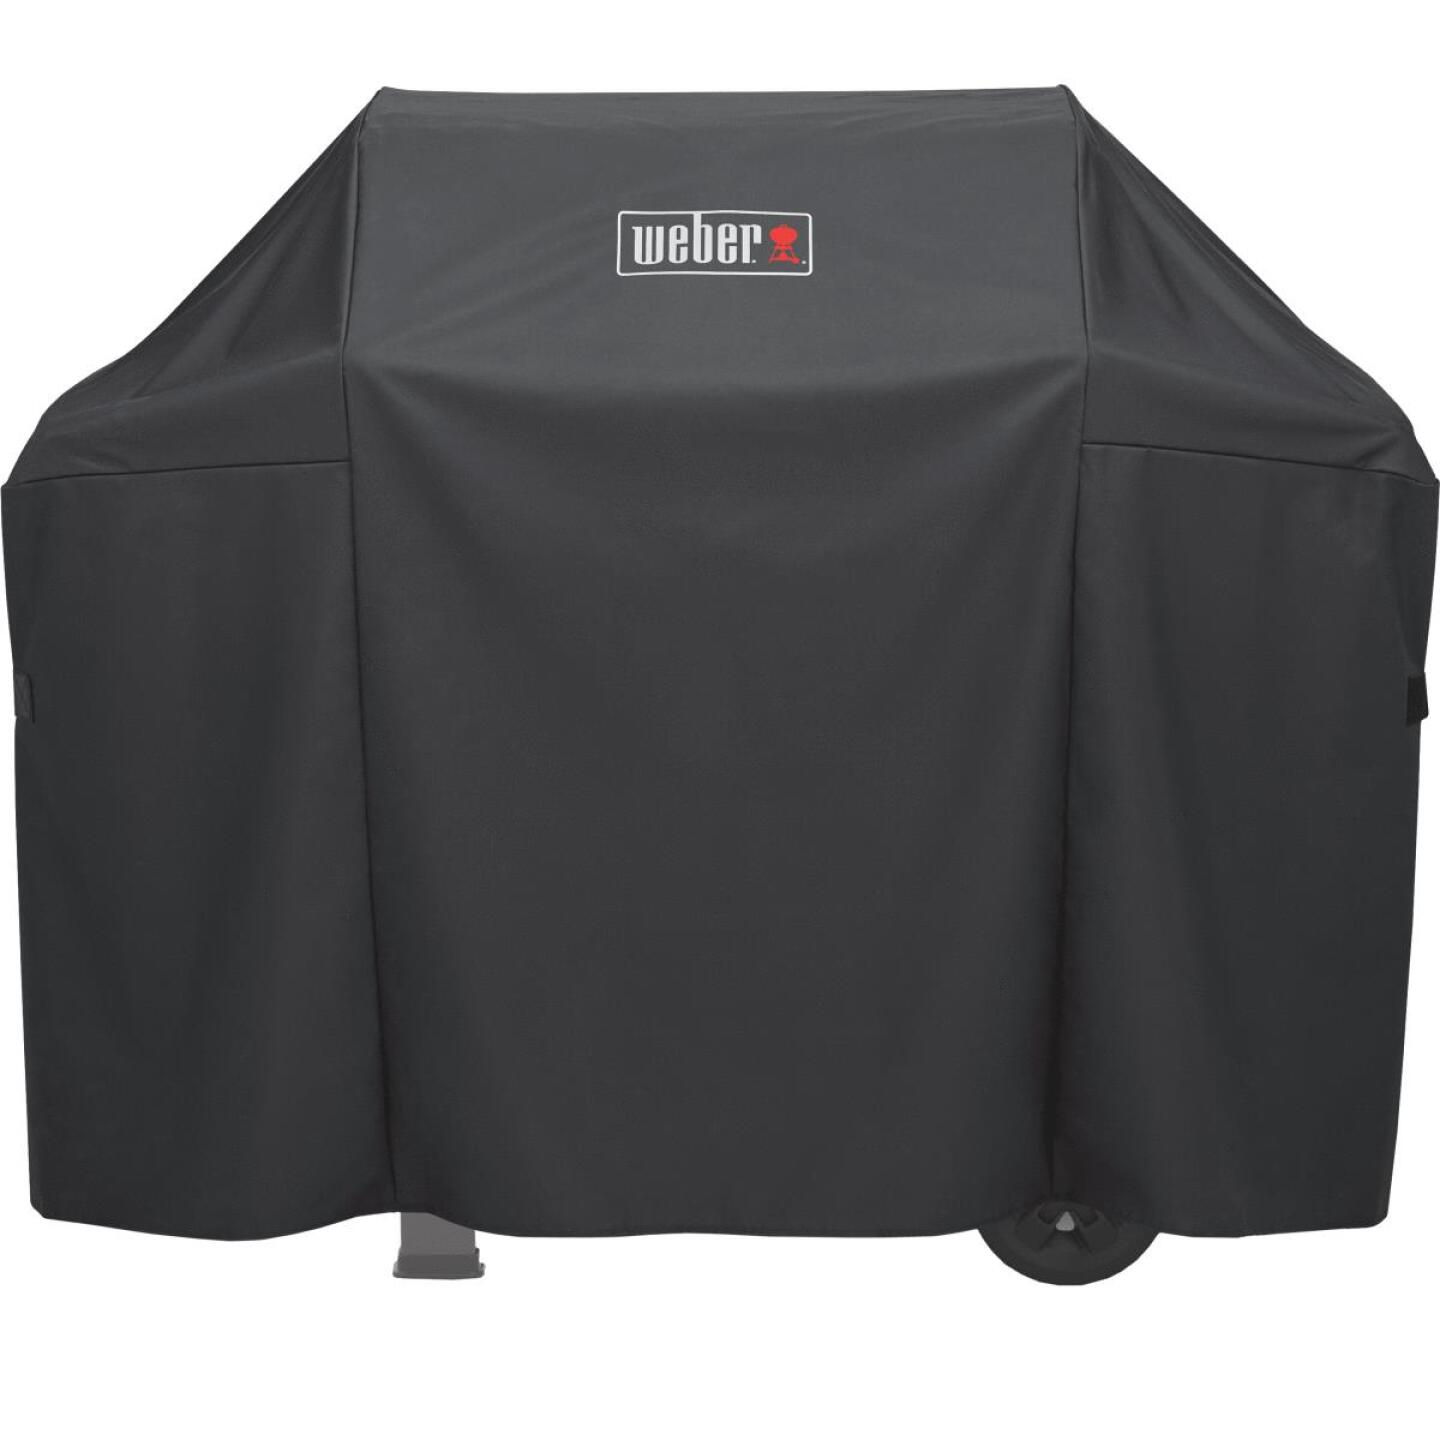 Weber Spirit II 51 In. 3-Burner Black Polyester Gas Grill Cover Image 1